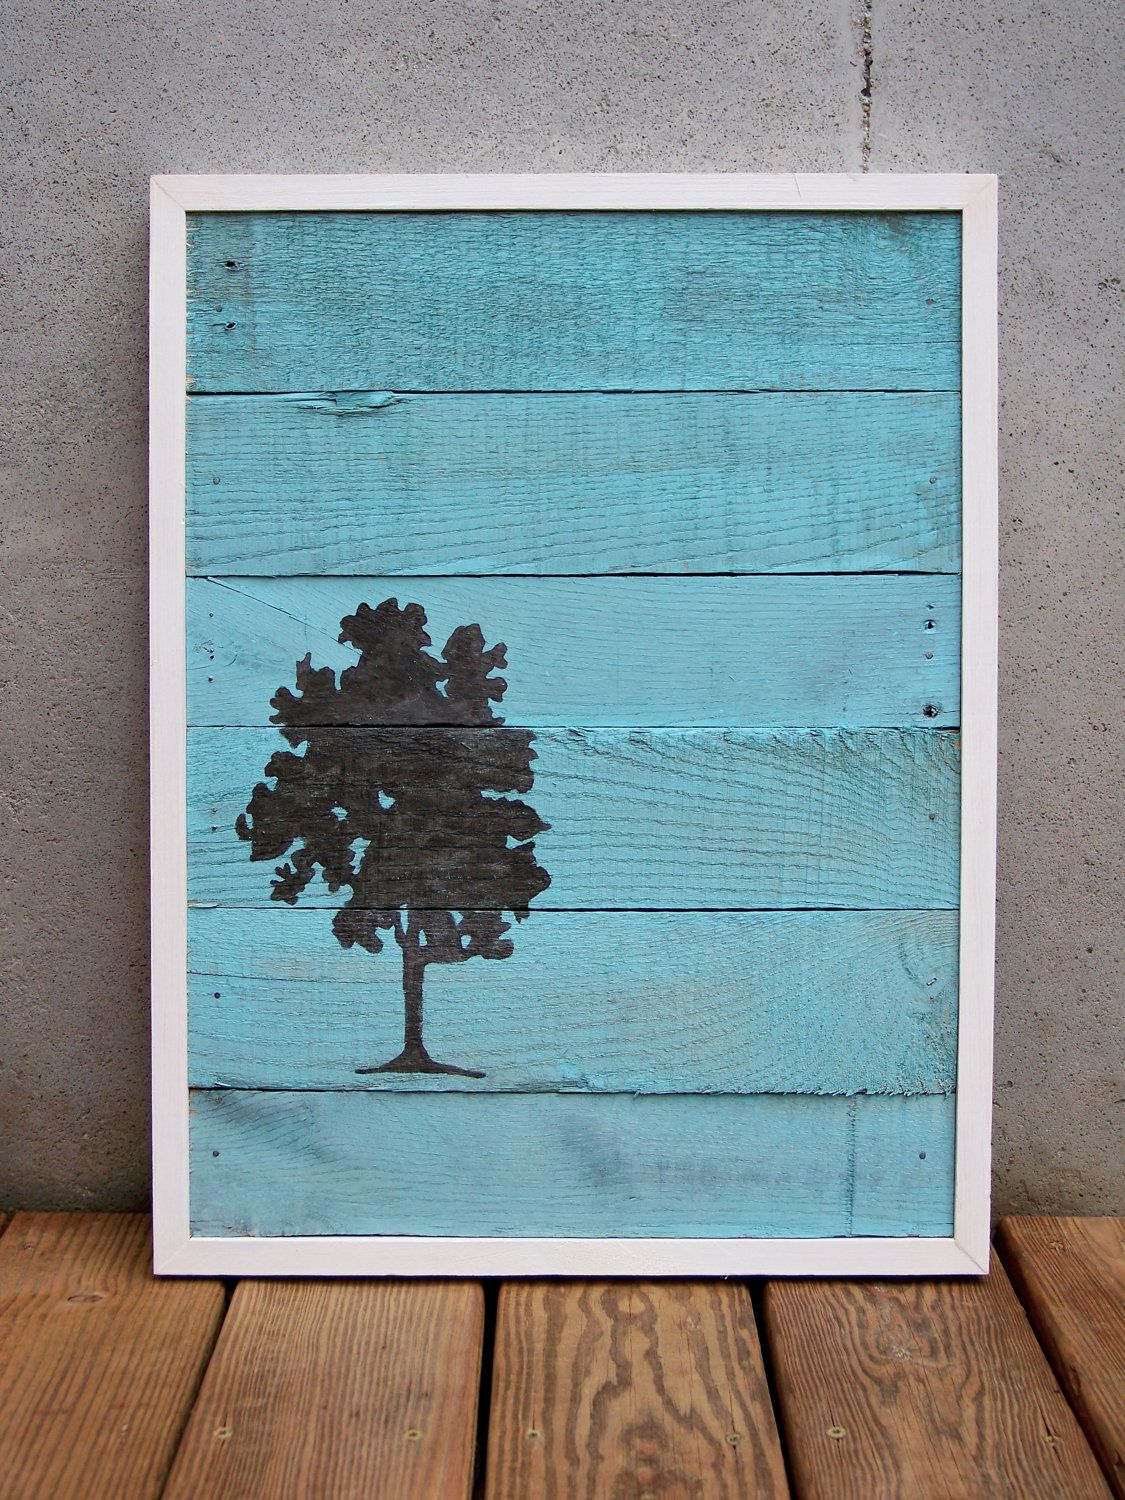 Reclaimed Wood Brown and Turquoise Tree Painting | deco recup ...